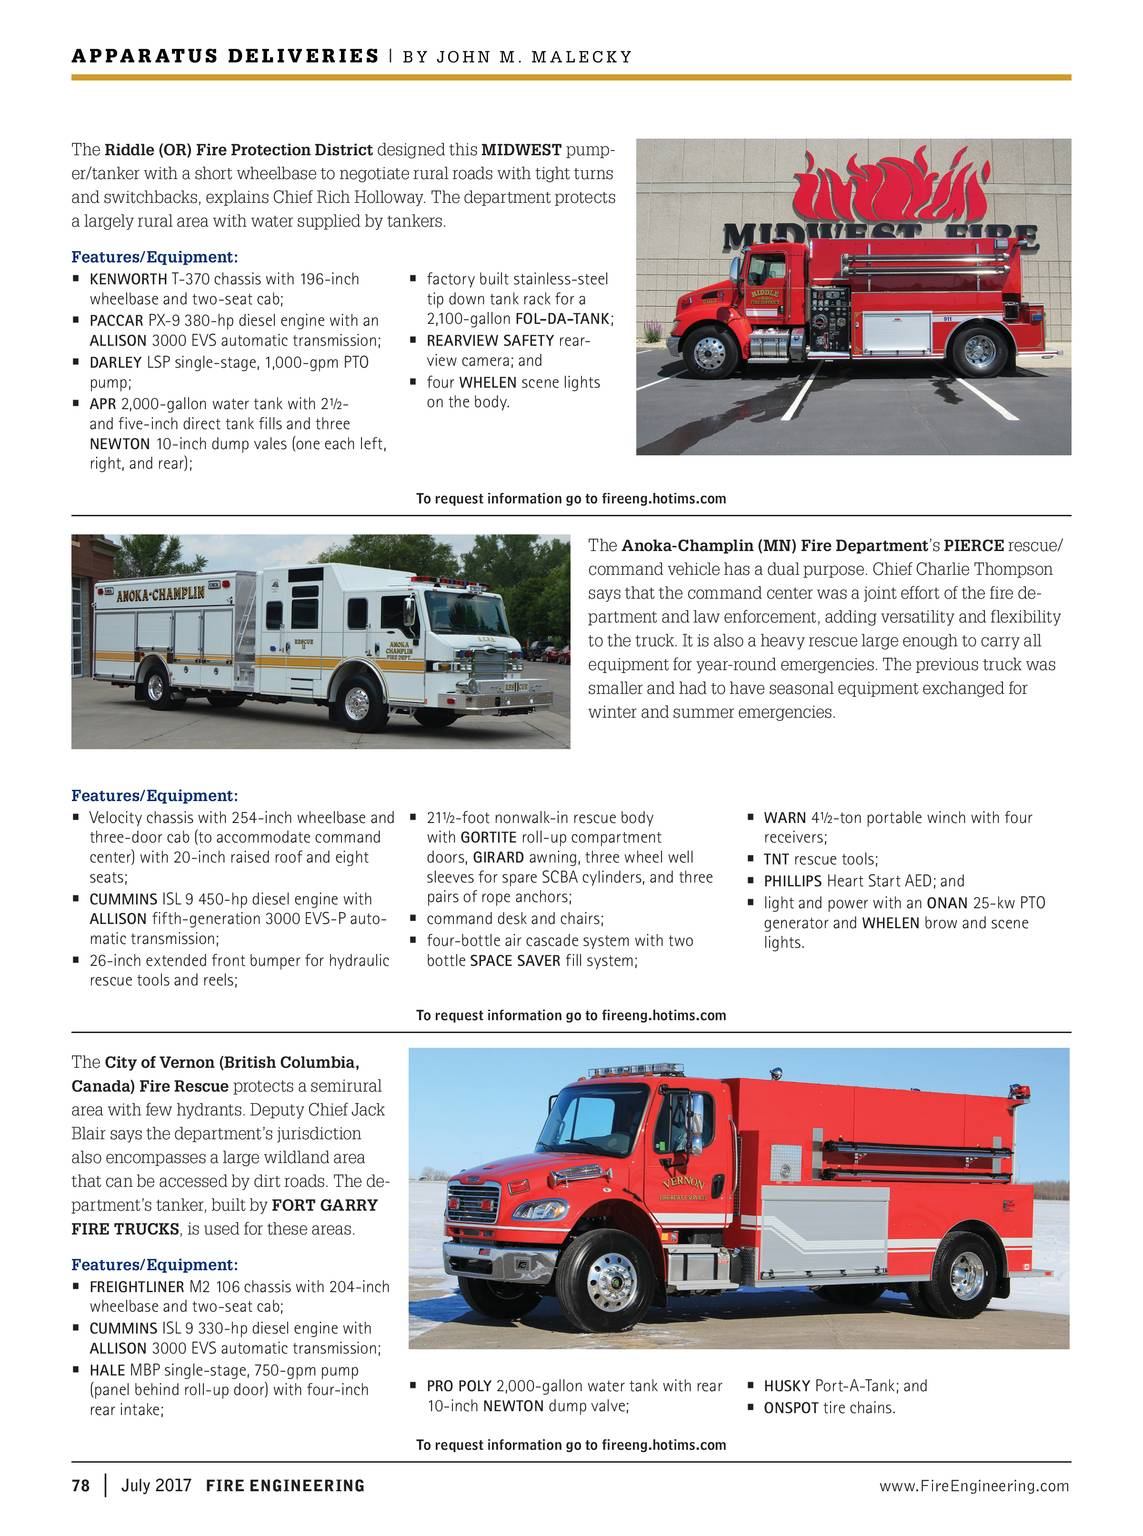 Fire Engineering - July 2017 - page 79